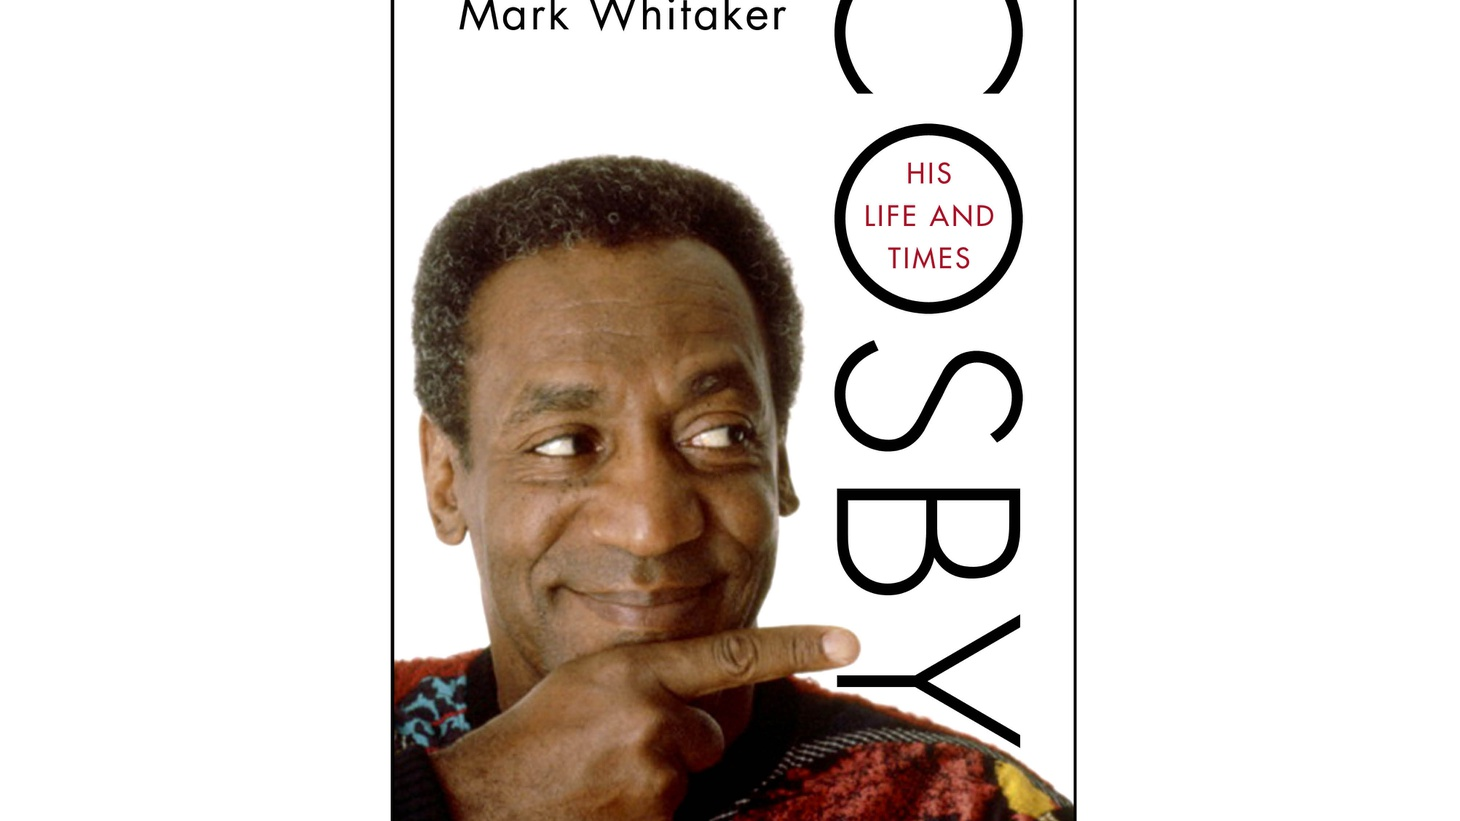 Author and journalist Mark Whitaker has written a new biography of a giant of American comedy. Kim Masters talks with Whitaker about what is and isn't in the book on Bill Cosby's life and career.